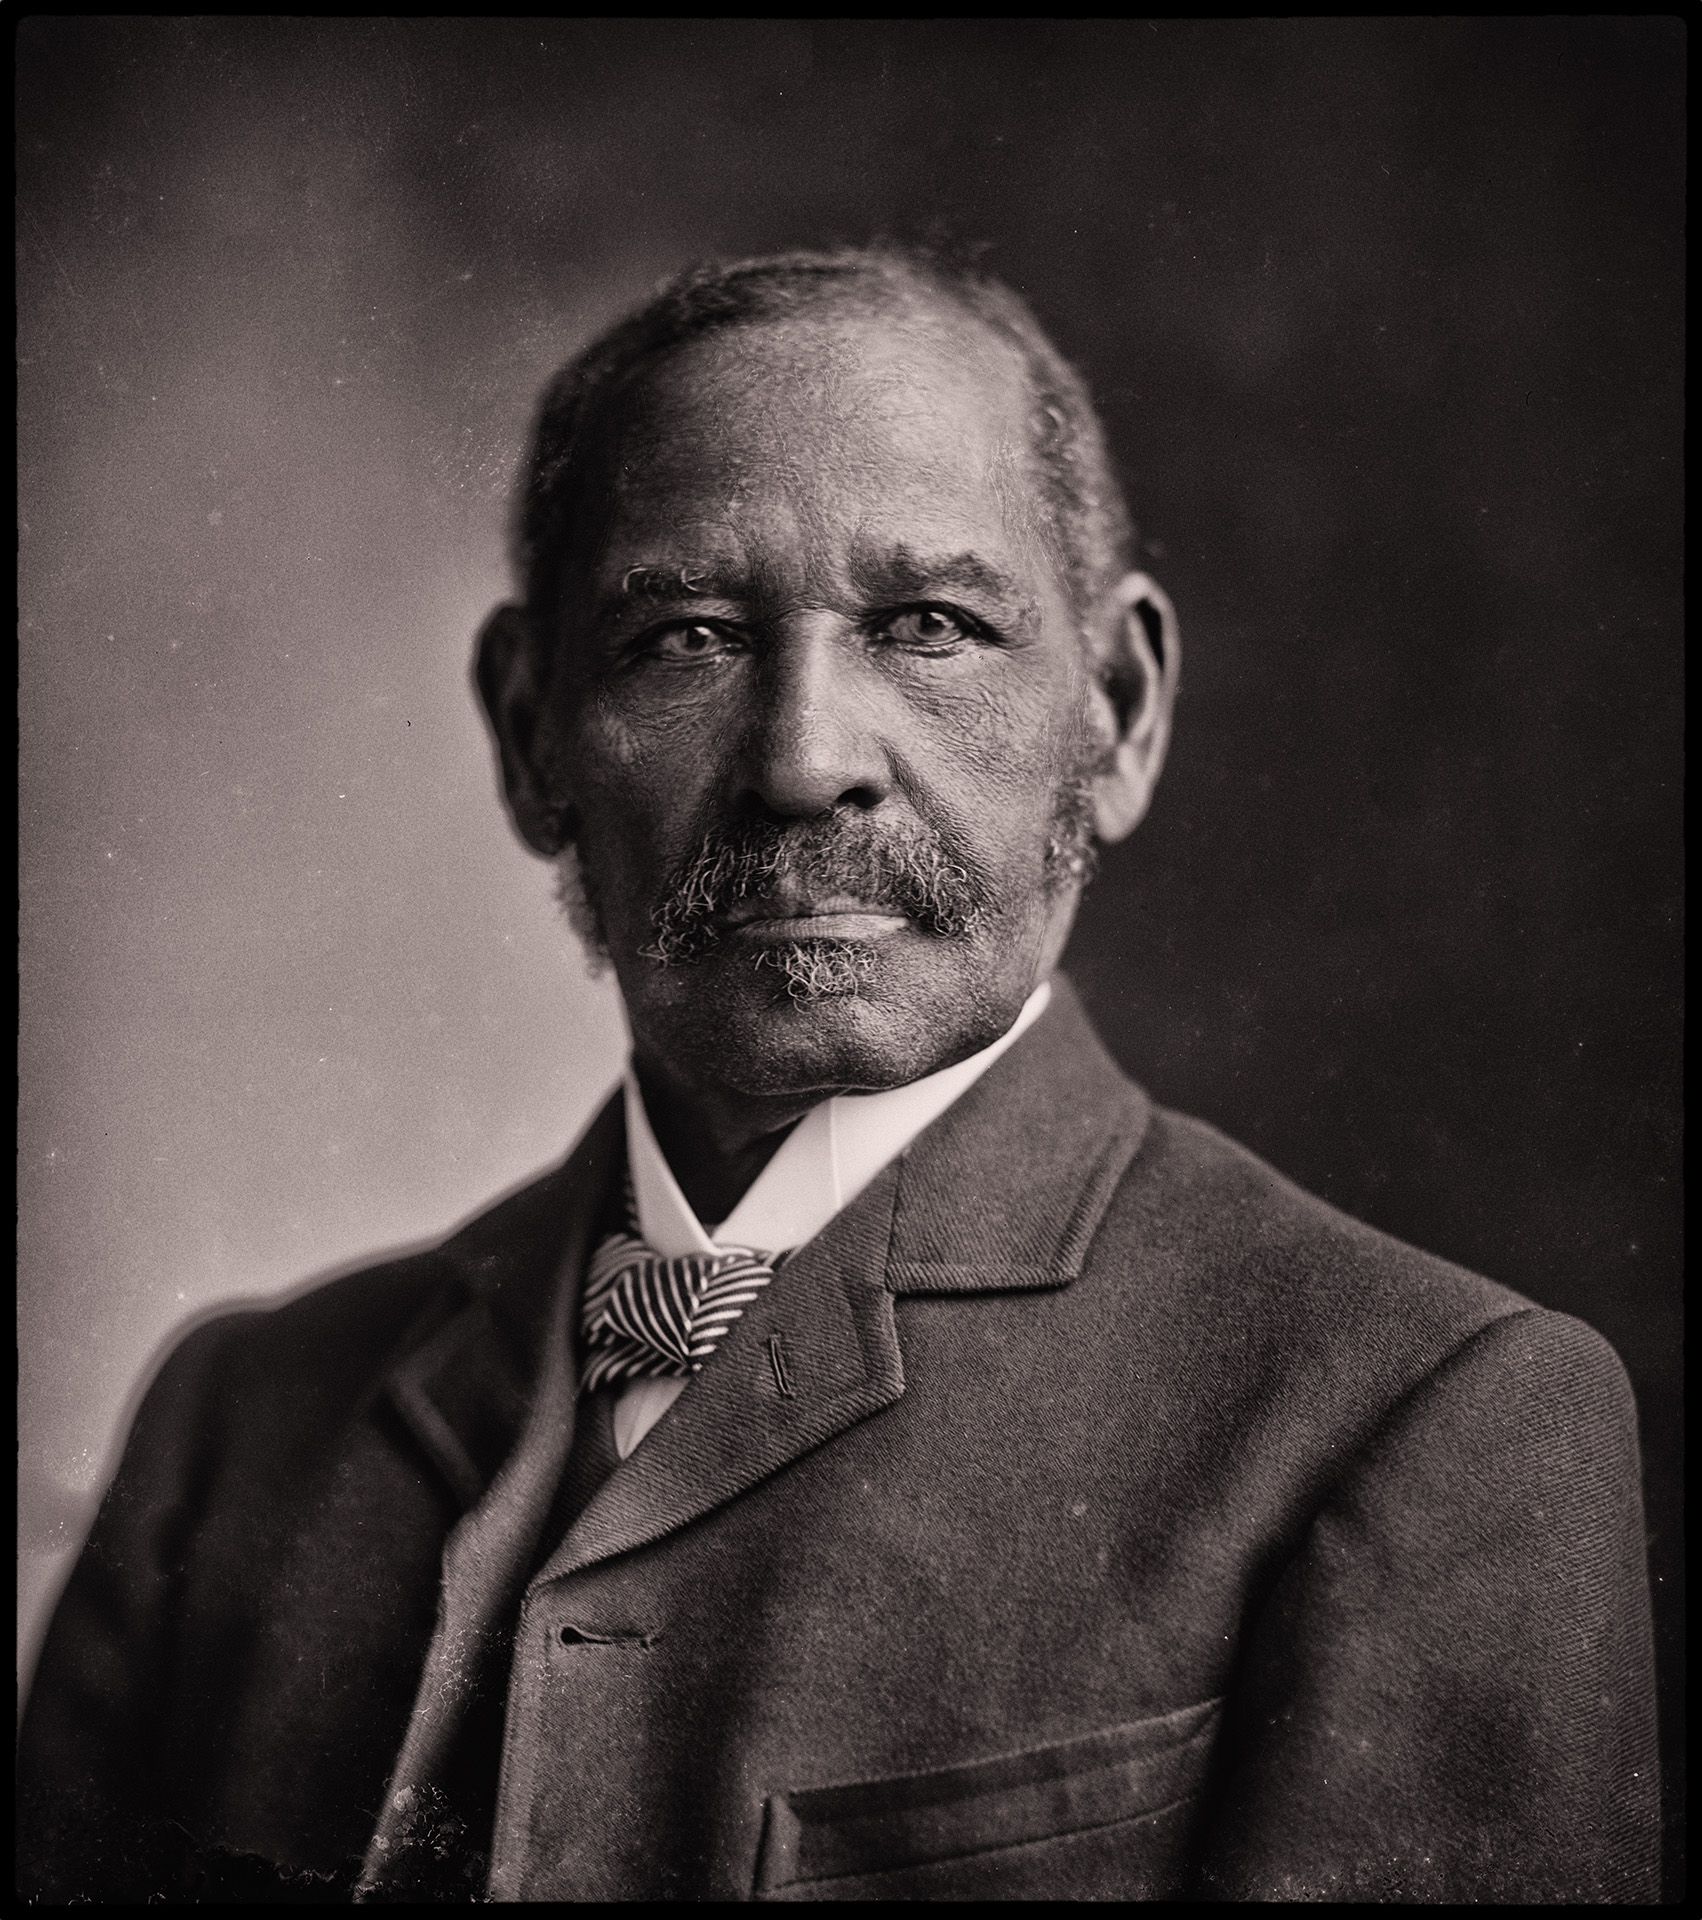 Mifflin Wistar Gibbs - elected to Victoria City council in 1866. Gibbs became the first black elected official in Canada. Photo credit Library of Congress Washington